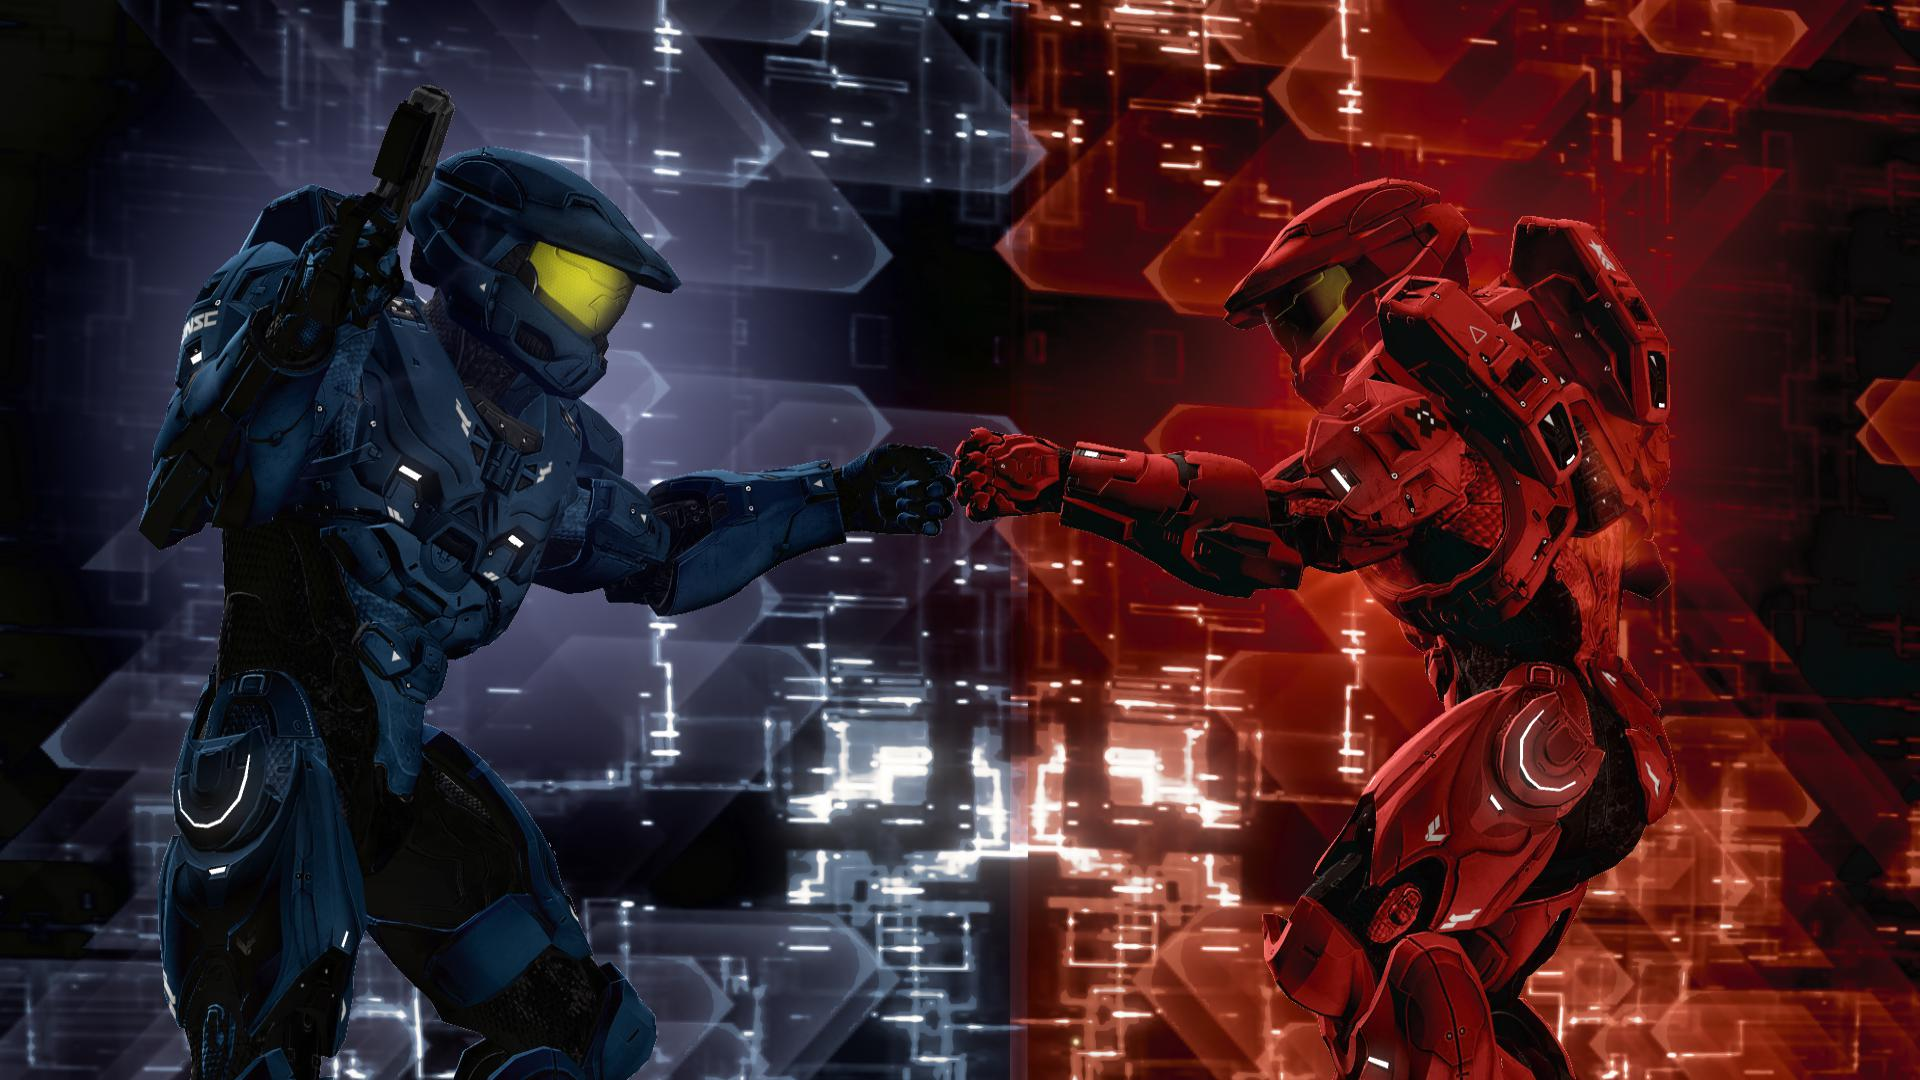 Halo red vs blue porn exposed pic